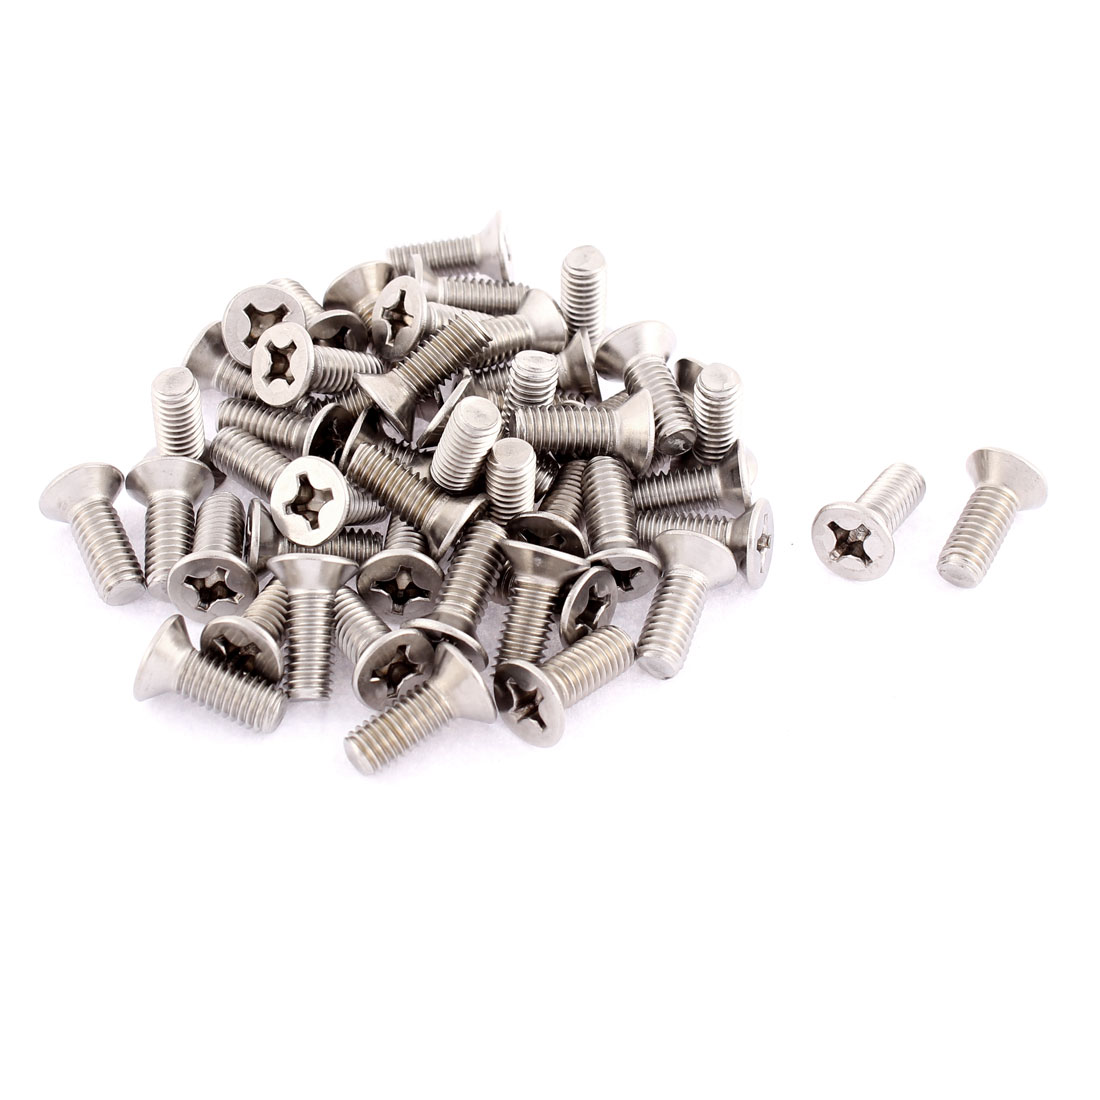 M6 x 16mm Phillips Flat Head Countersunk Bolts Machine Screws 50pcs